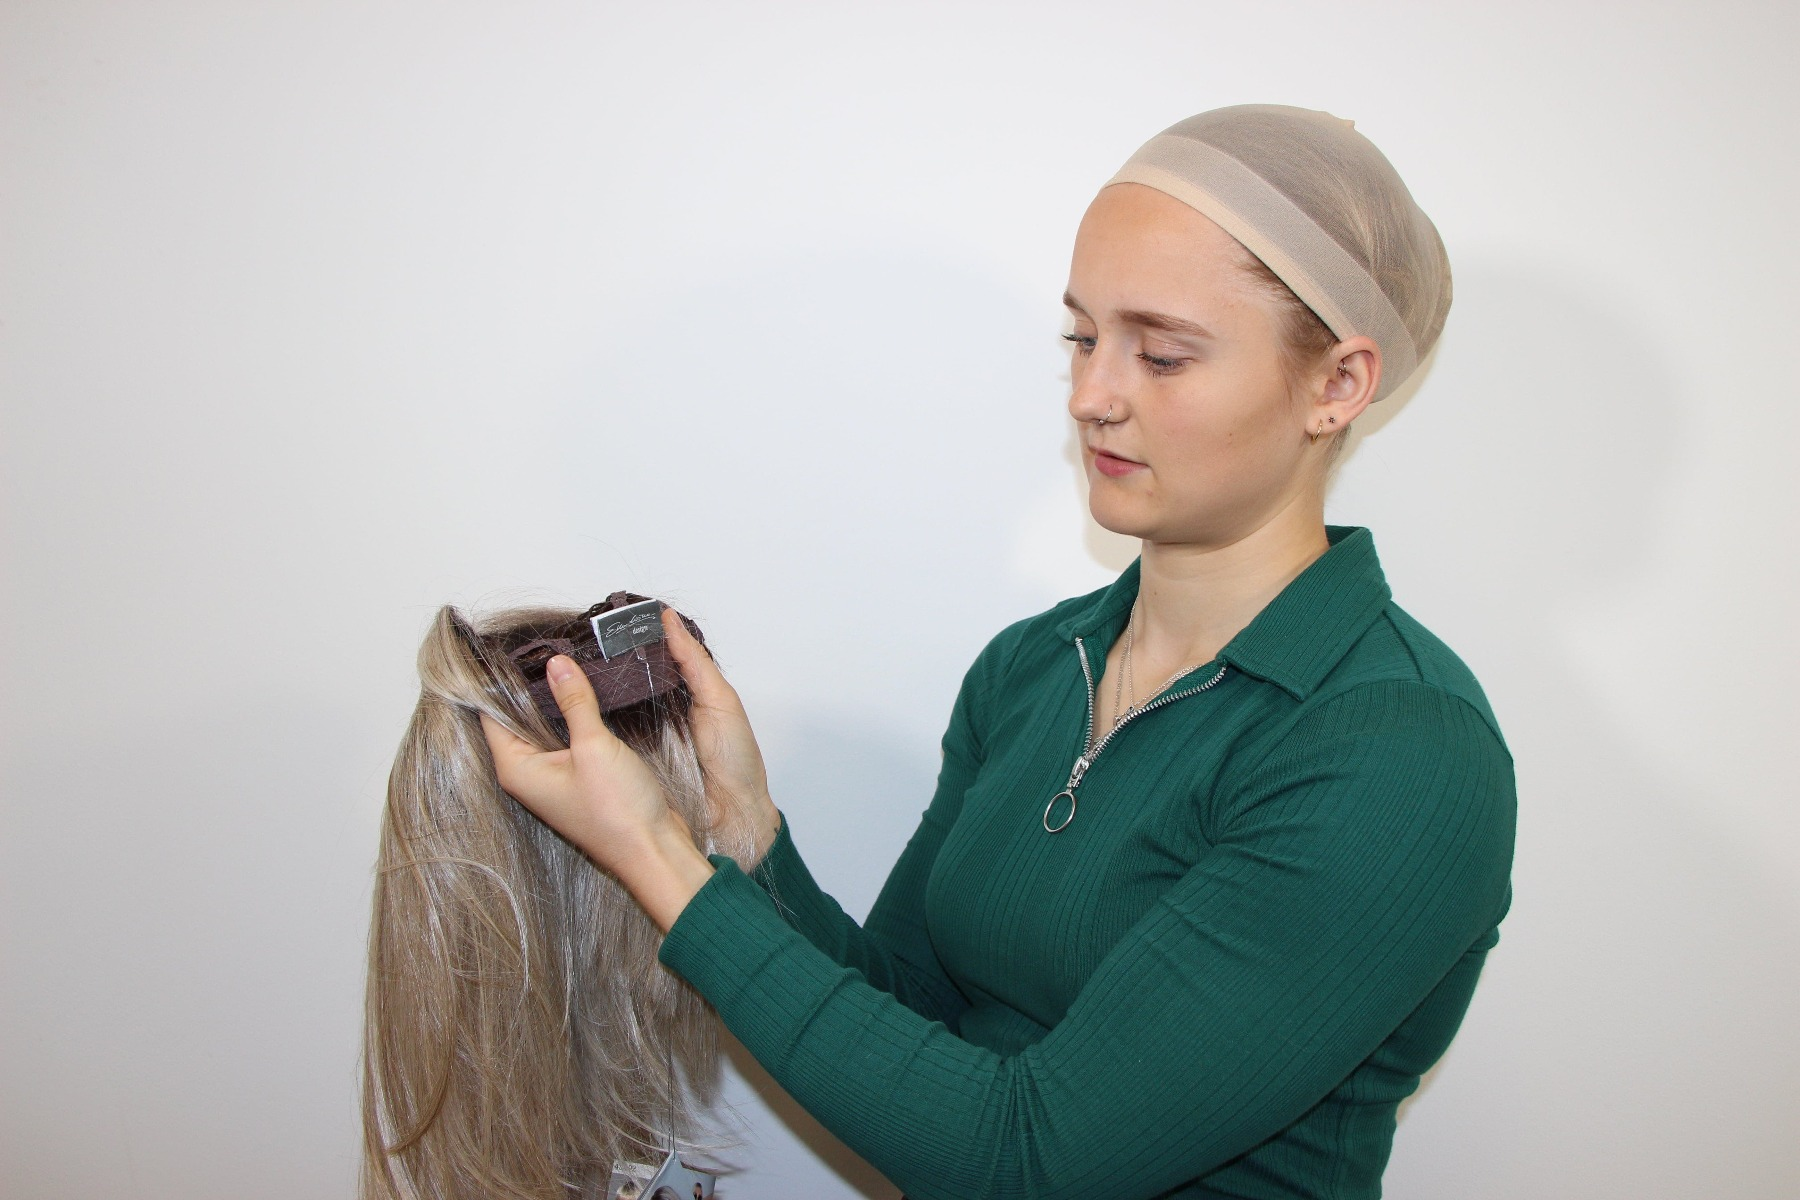 Lady finding the label on her wig